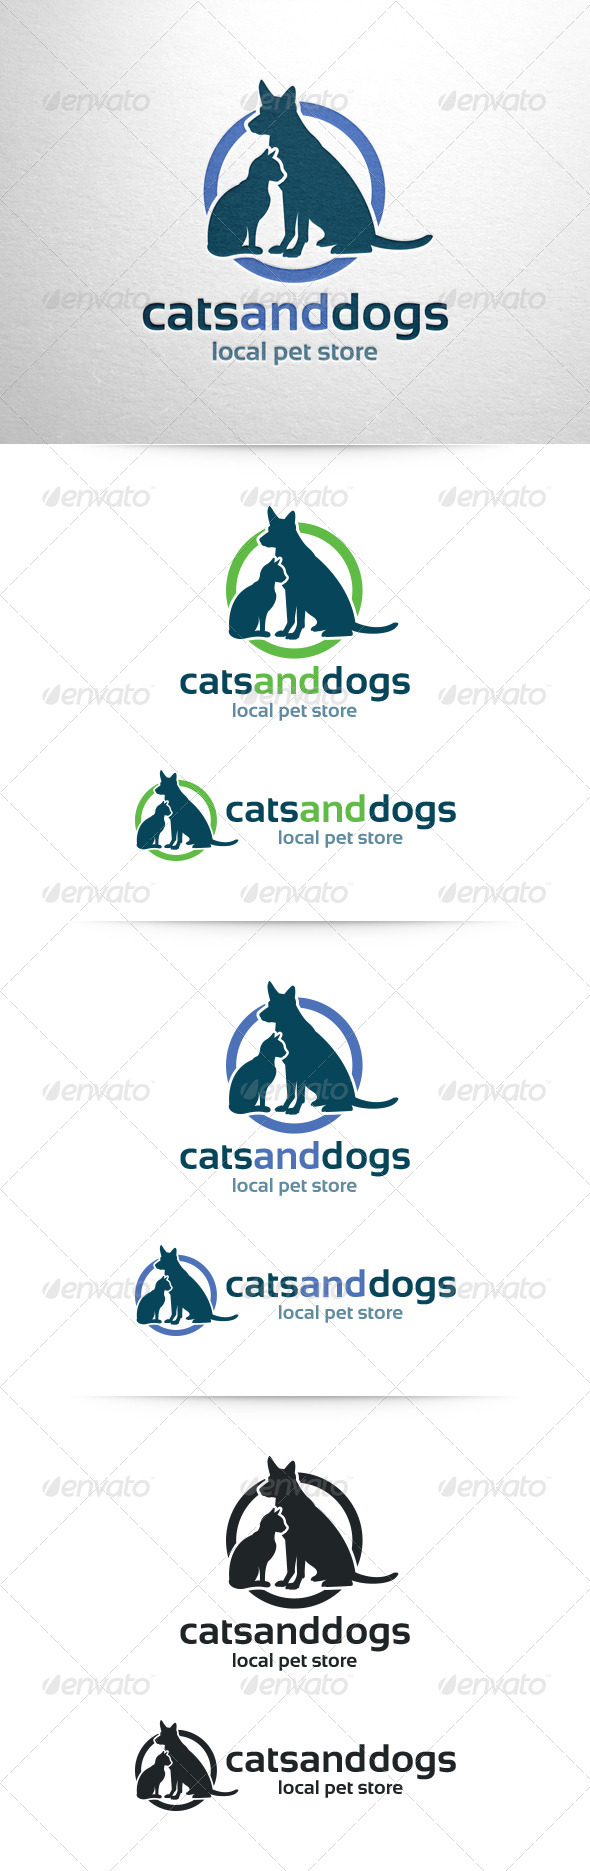 GraphicRiver Cats and Dogs Logo Template 6520544